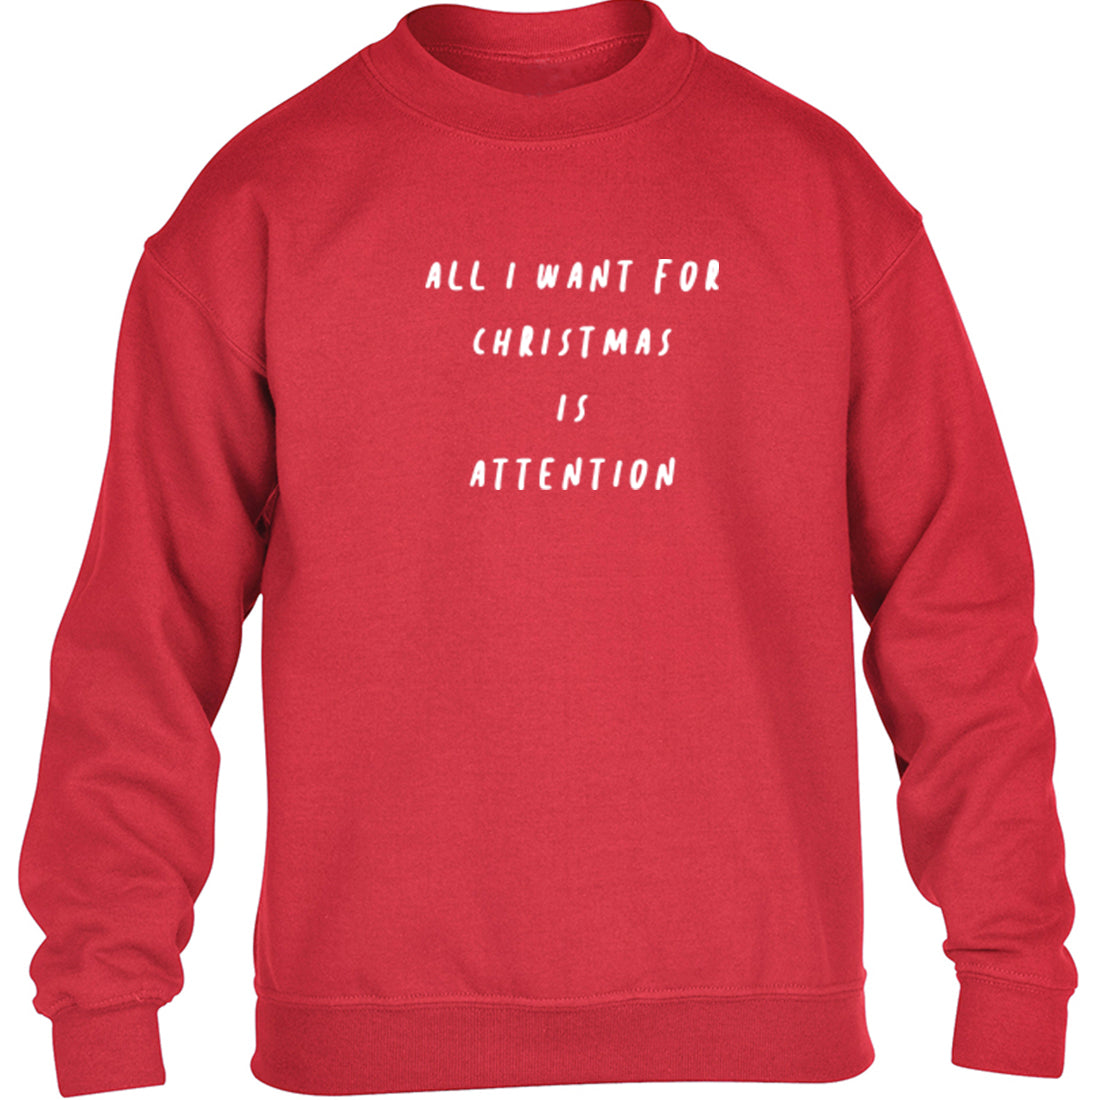 All I Want For Christmas Is Attention Childrens Ages 3/4-12/14 Unisex Jumper K2468 - Illustrated Identity Ltd.